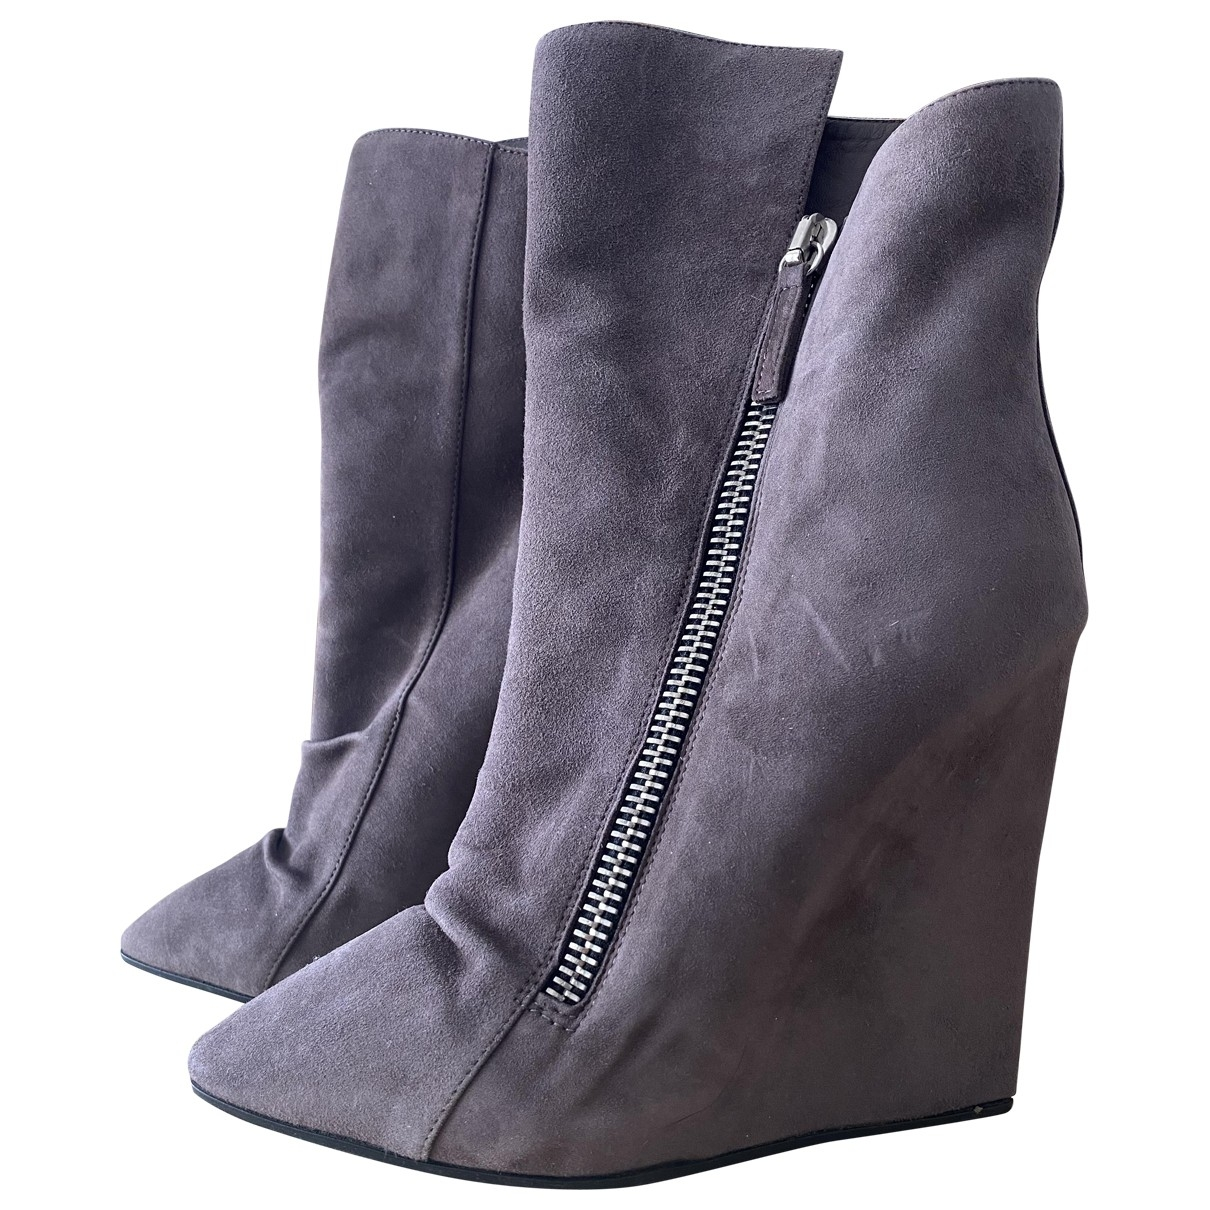 Giuseppe Zanotti \N Grey Suede Ankle boots for Women 38.5 EU